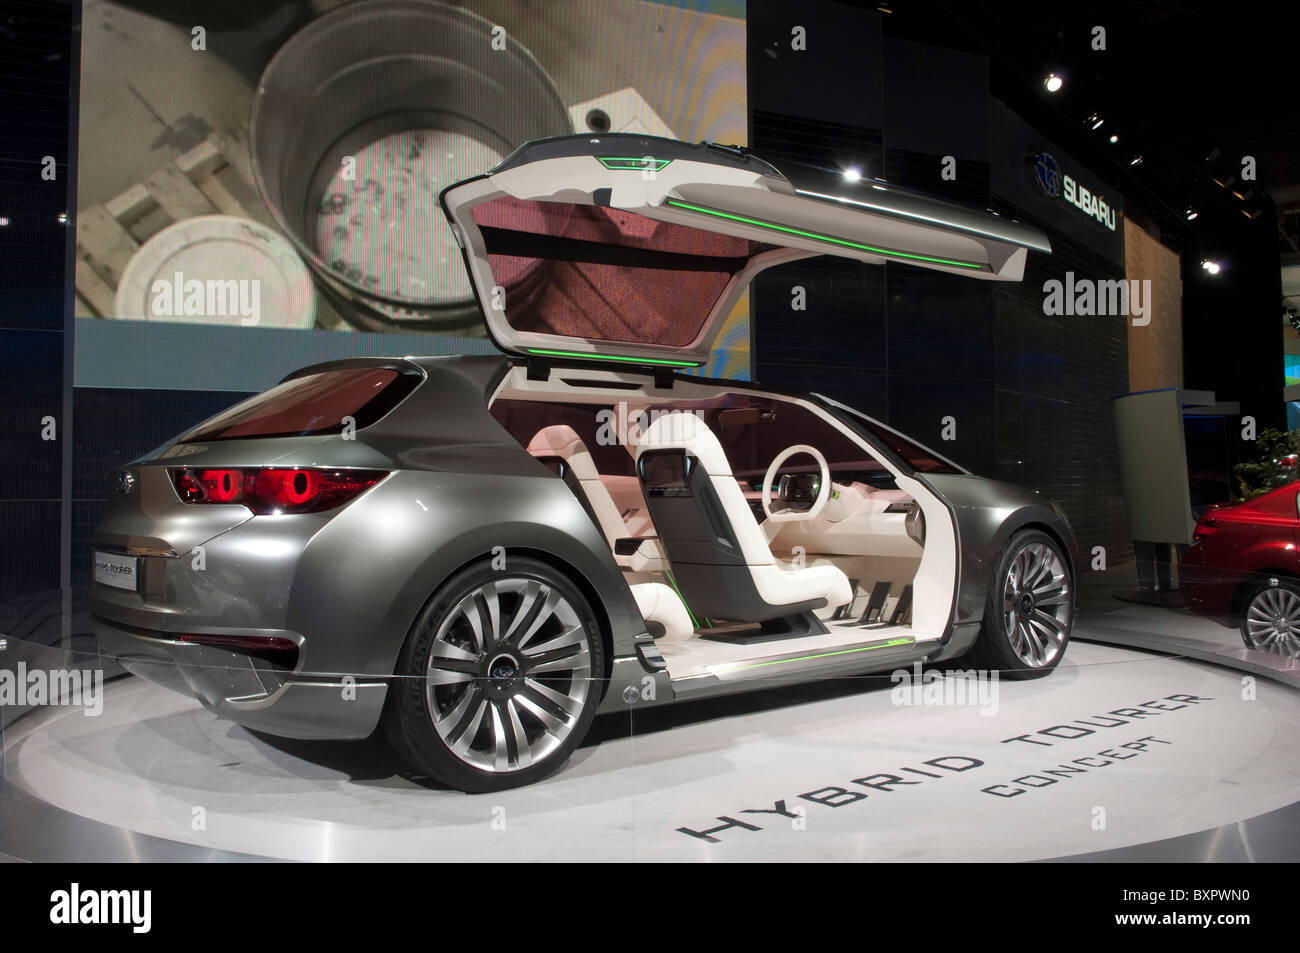 Subaru Hybrid Tourer concept car at the 2010 North American International Auto Show in Detroit - Stock Image